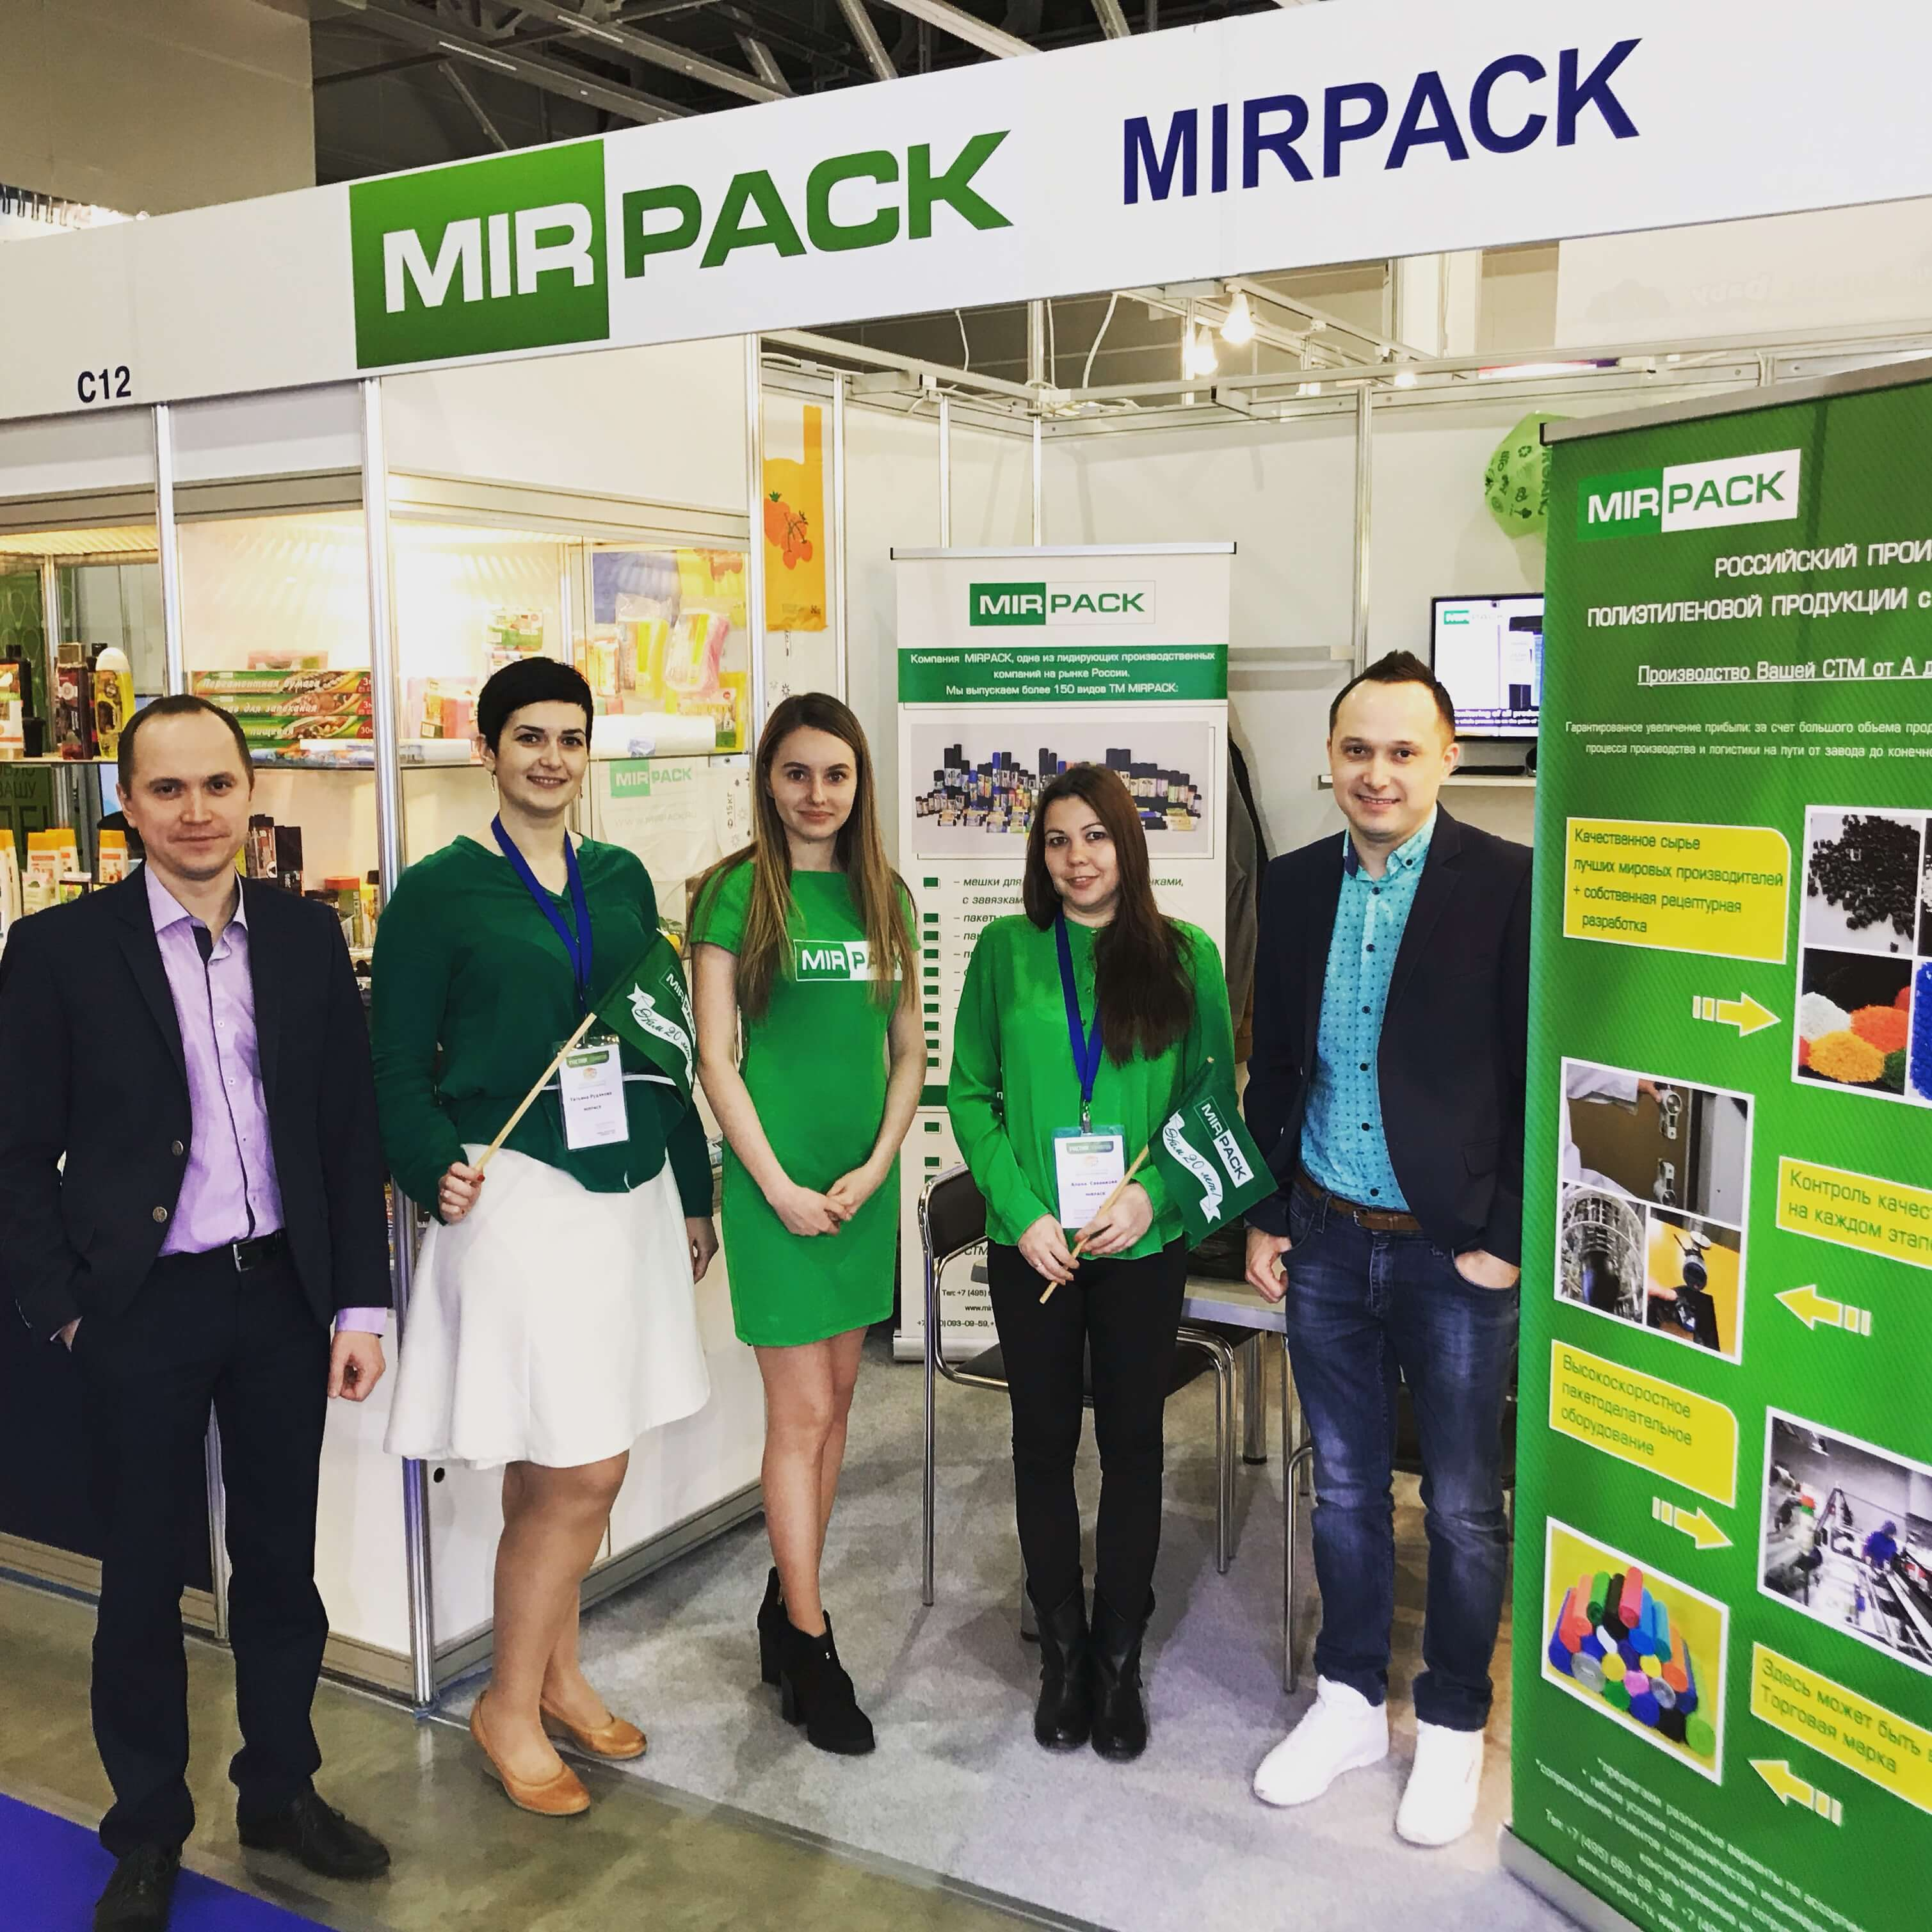 MIRPACK at STM - IPLS 2018 Moscow Crocus Expo